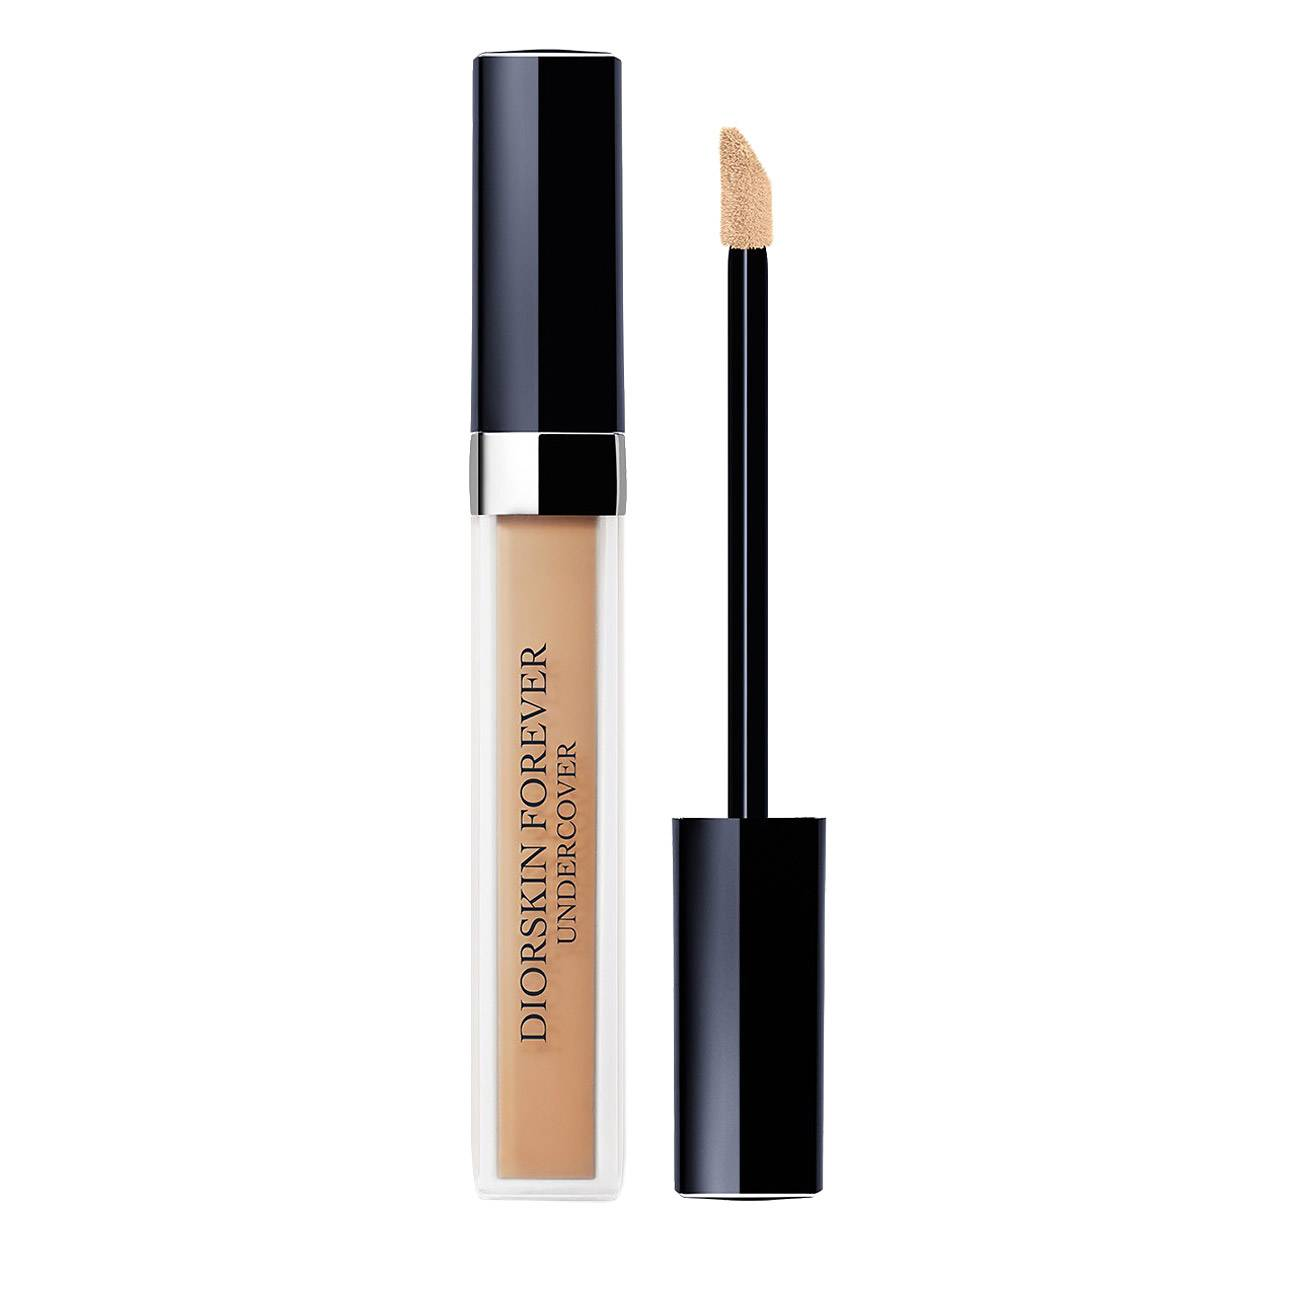 Diorskin Forever Undercover Concealer 040-Honey Beige Dior imagine 2021 bestvalue.eu